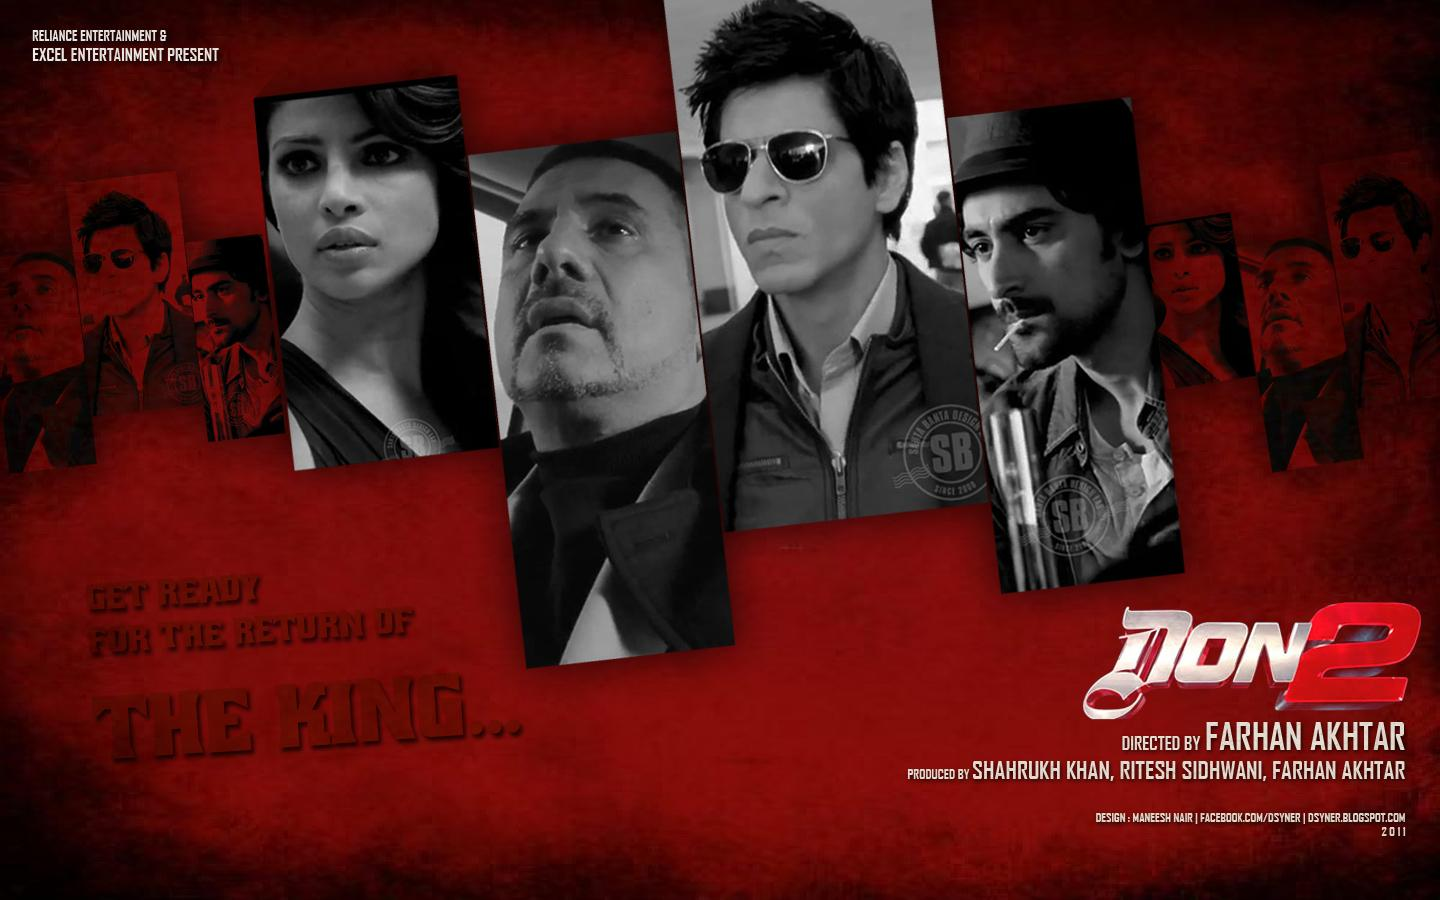 http://1.bp.blogspot.com/-B0yCegjWhXA/Tvw7ulCcWWI/AAAAAAAAAH8/cABLDoZVmMA/s1600/Shahrukh-Khan-Don-2-Movie-Wallpapers-7.jpg